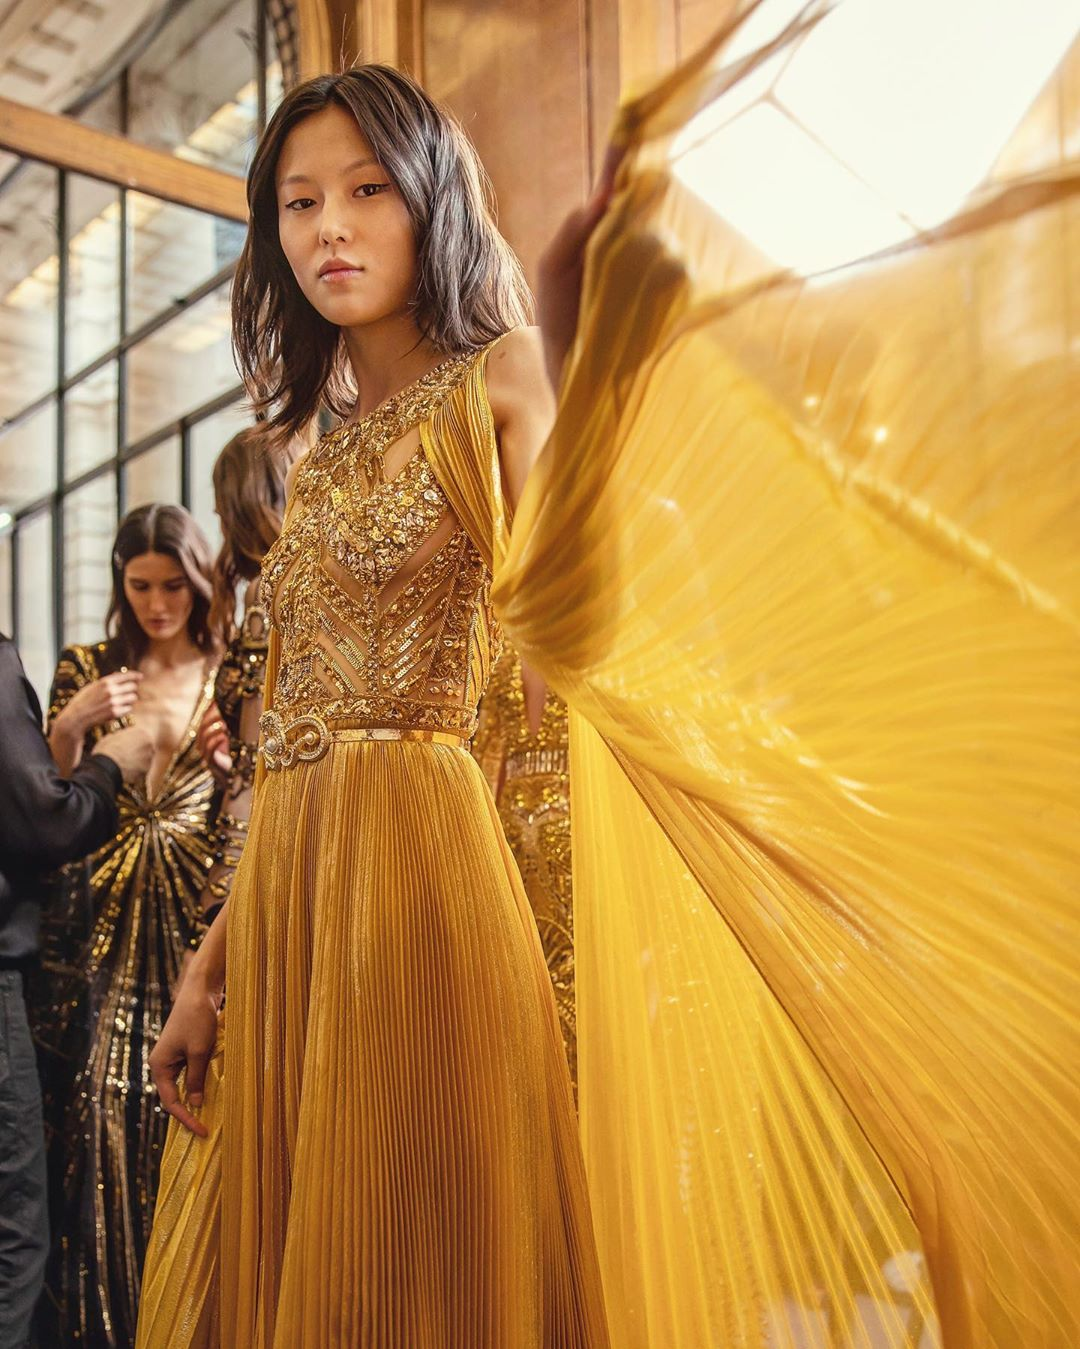 Gold Sleeveless Sequin Long Gown with Intricate Bodice and Pleated Organza.